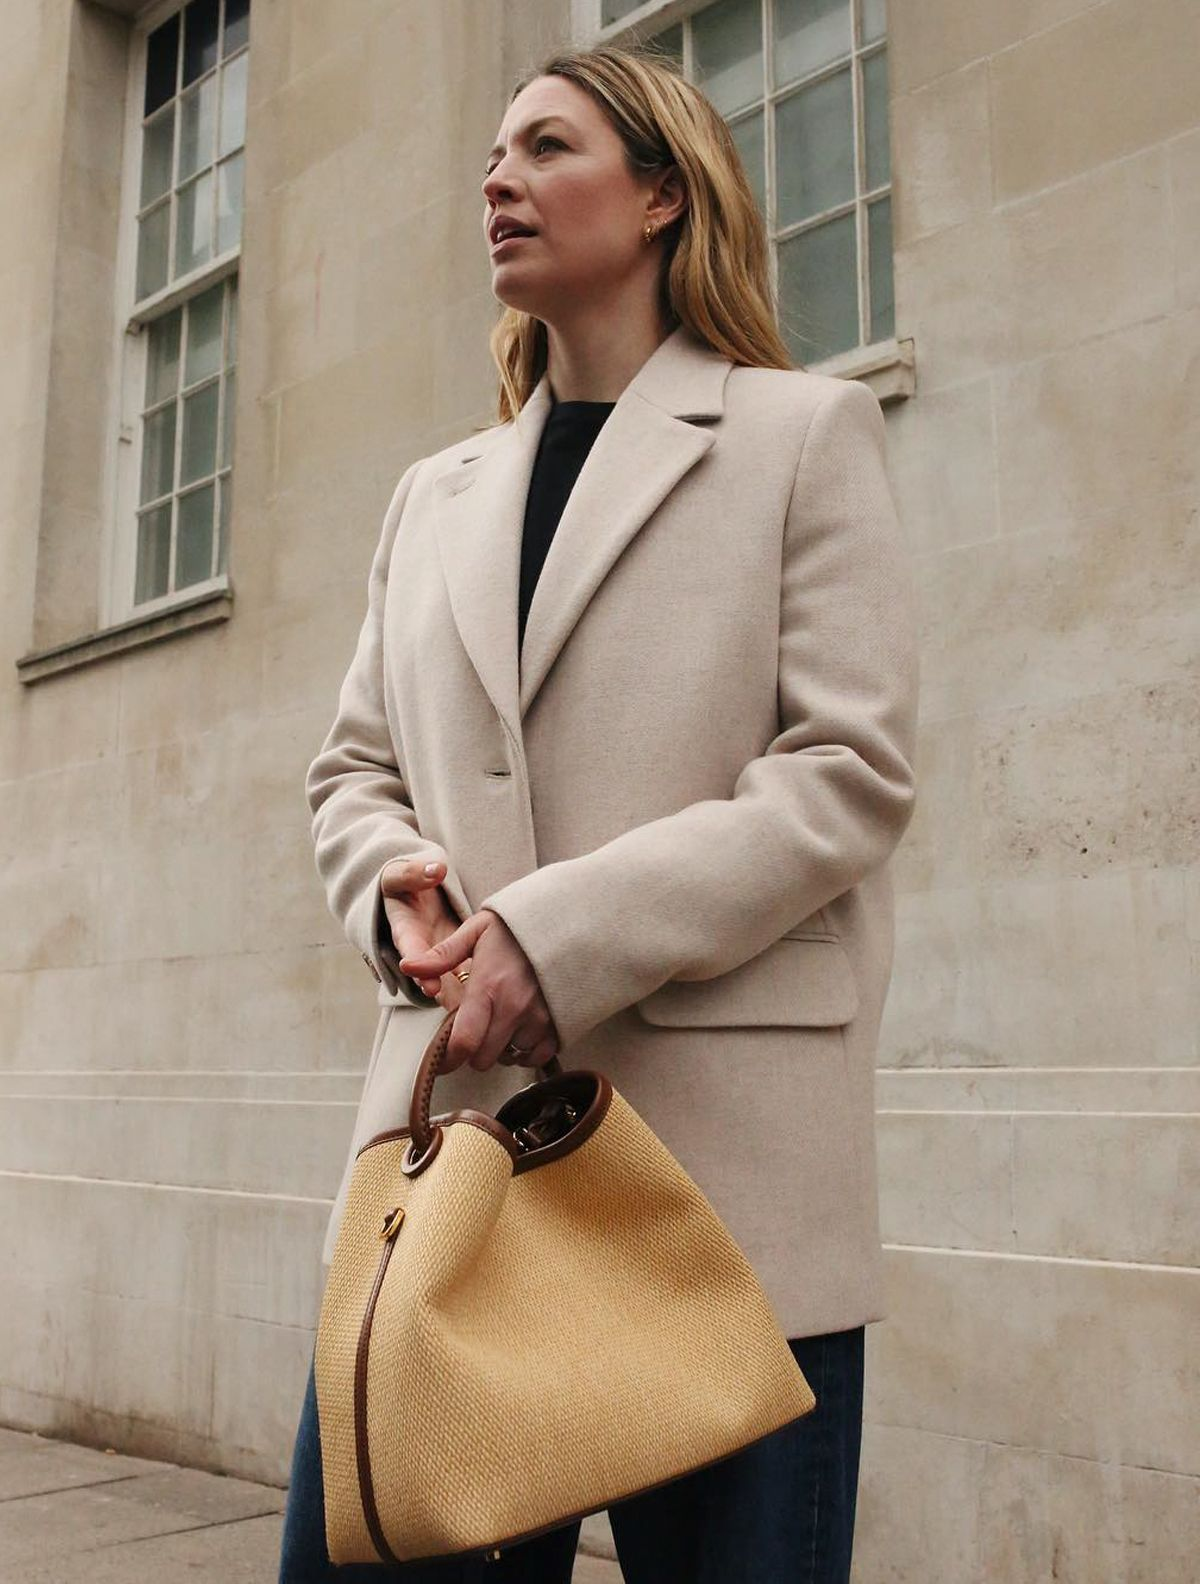 This & Other Stories Blazer Might Be The Most Popular Item On The High-Street